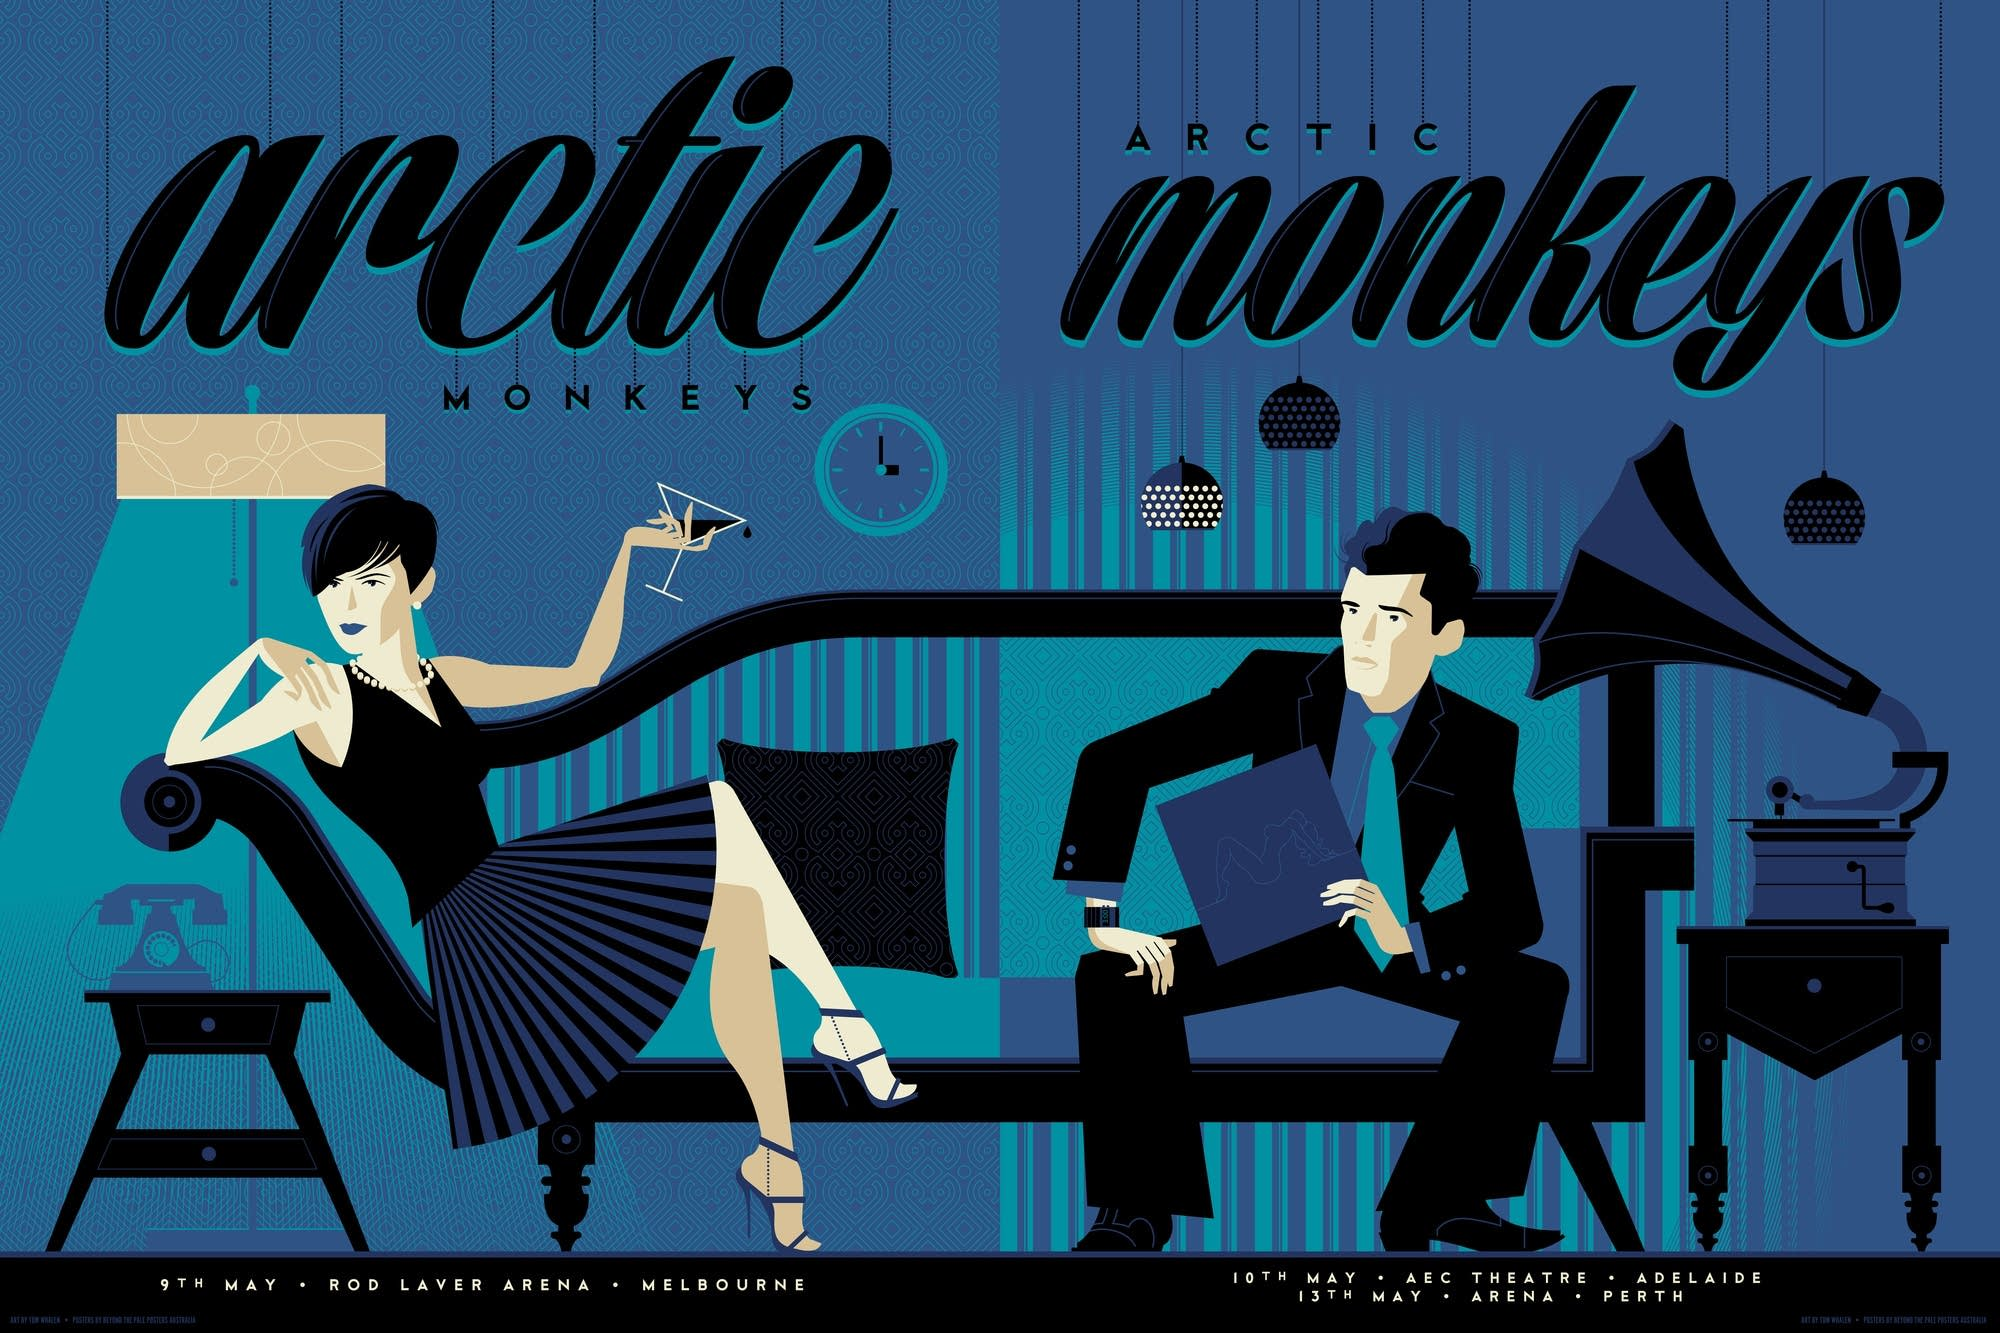 Arctic Monkeys poster, from 'OMG Posters'